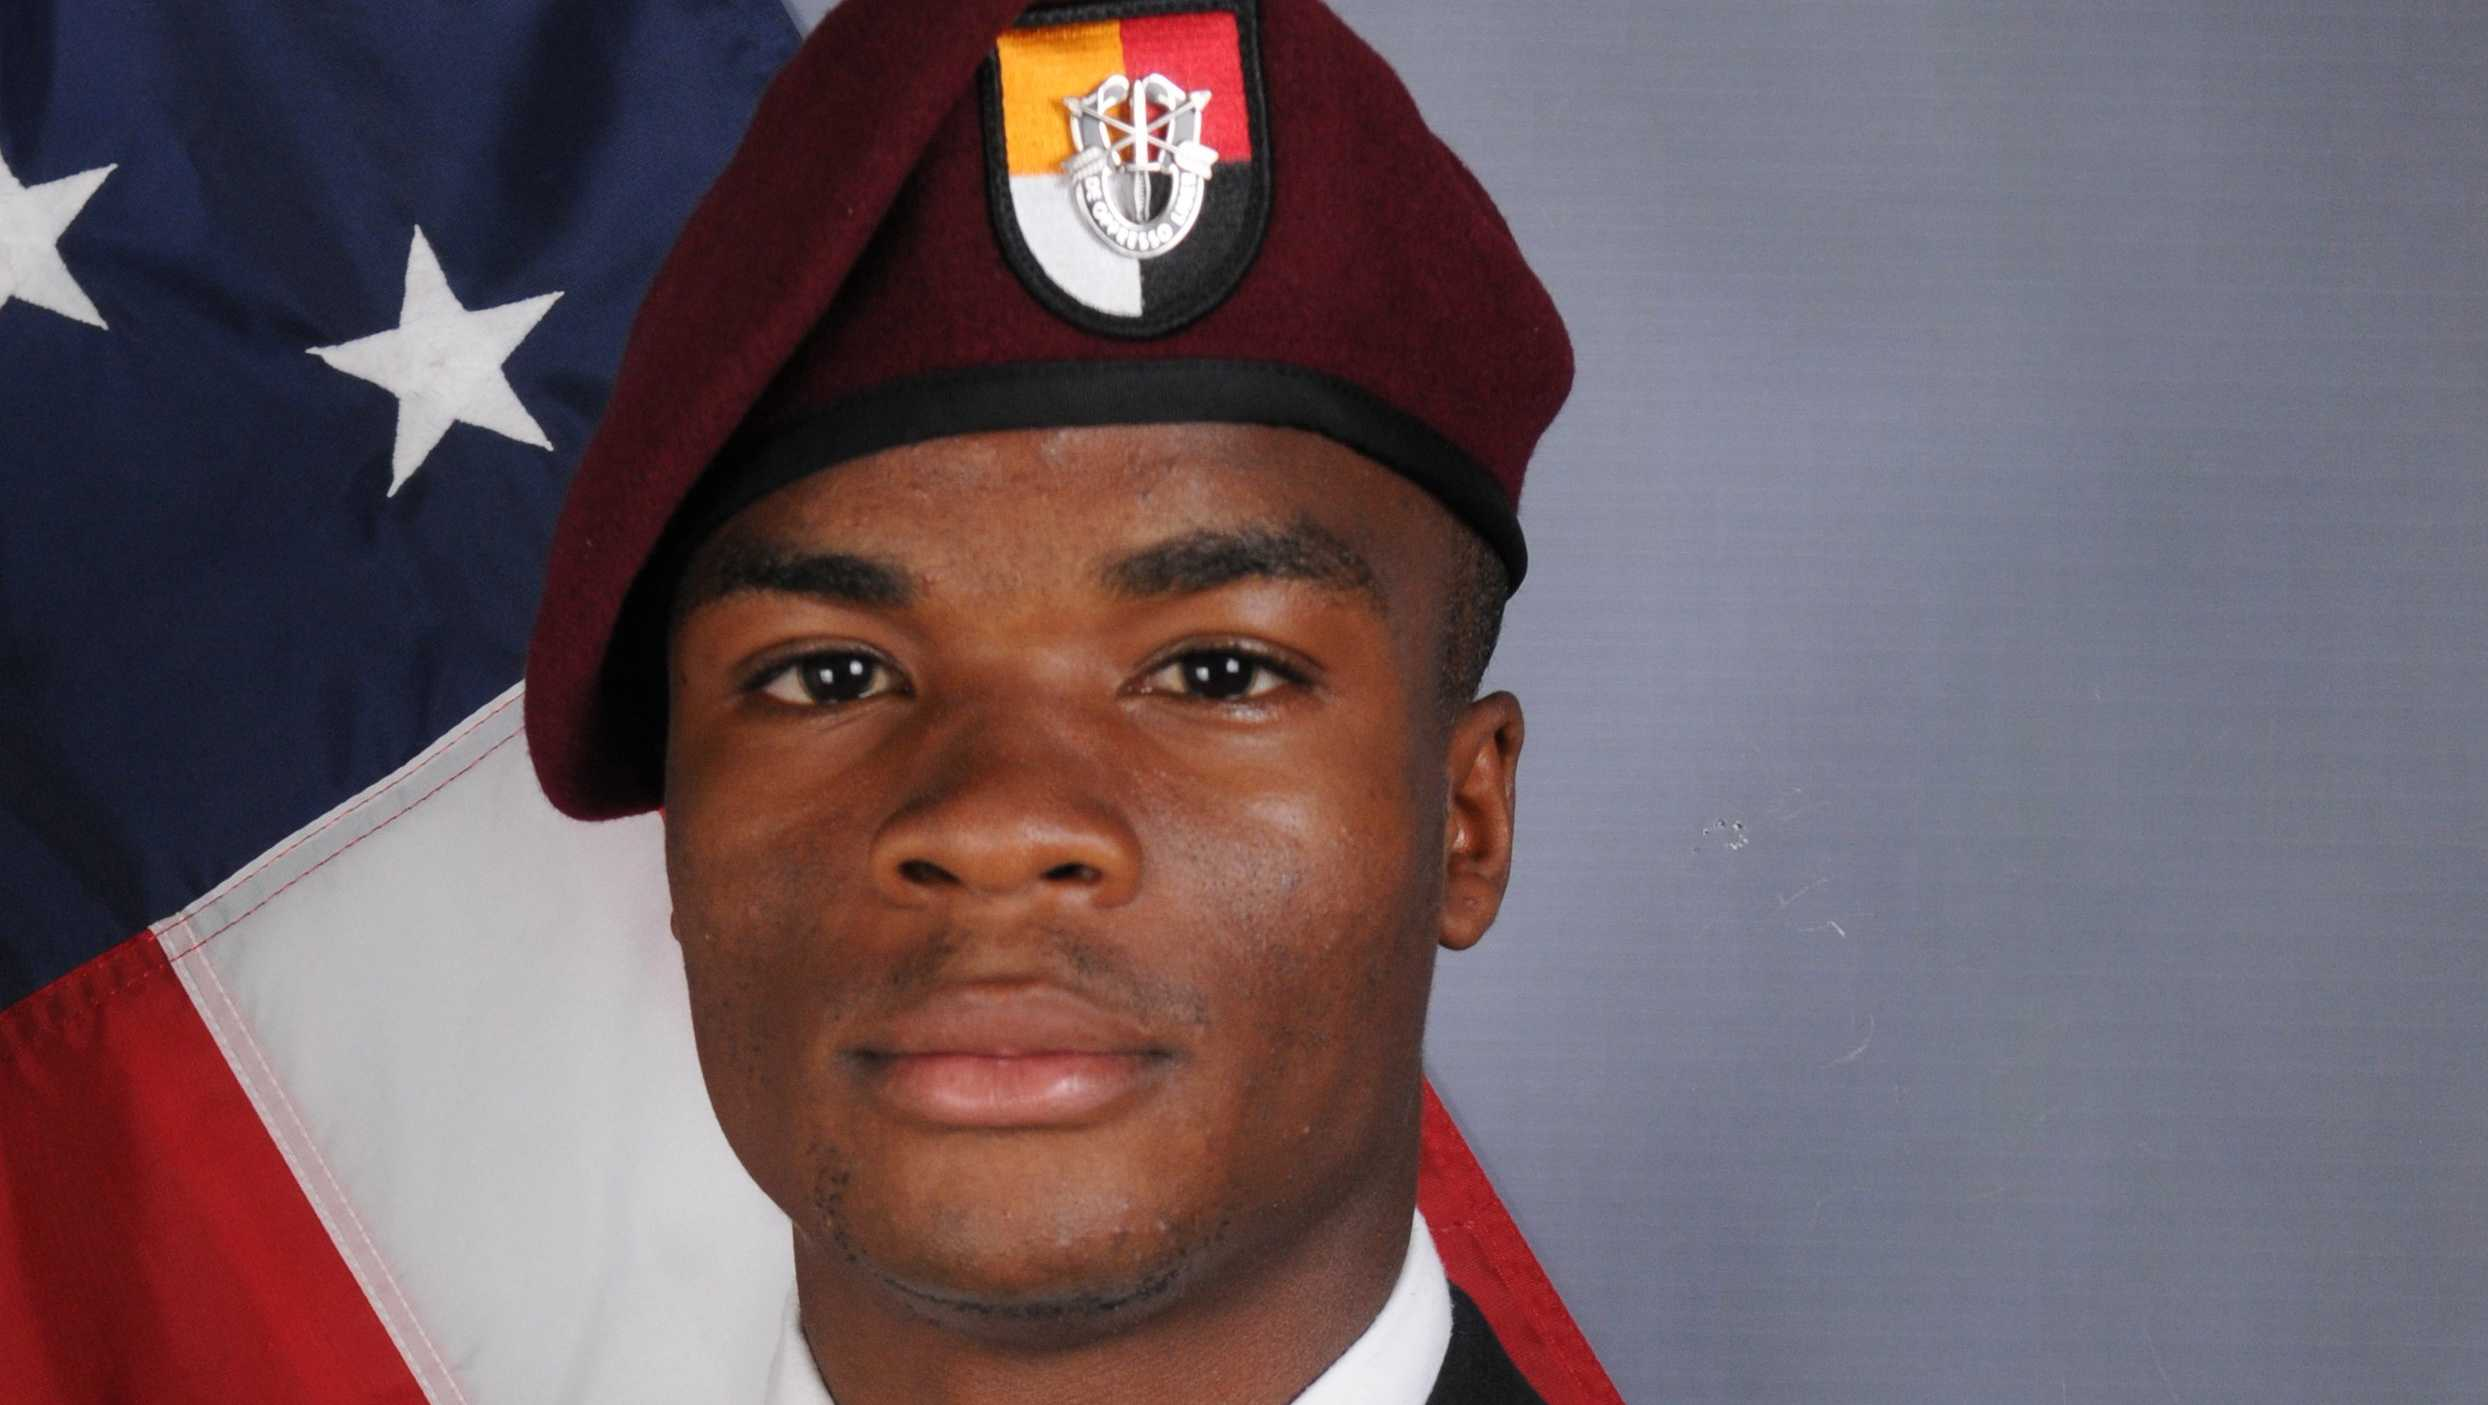 This file photo provided by the U.S. Army Special Operations Command shows Sgt. La David Johnson, who was killed in an Oct. 4 ambush in Niger.